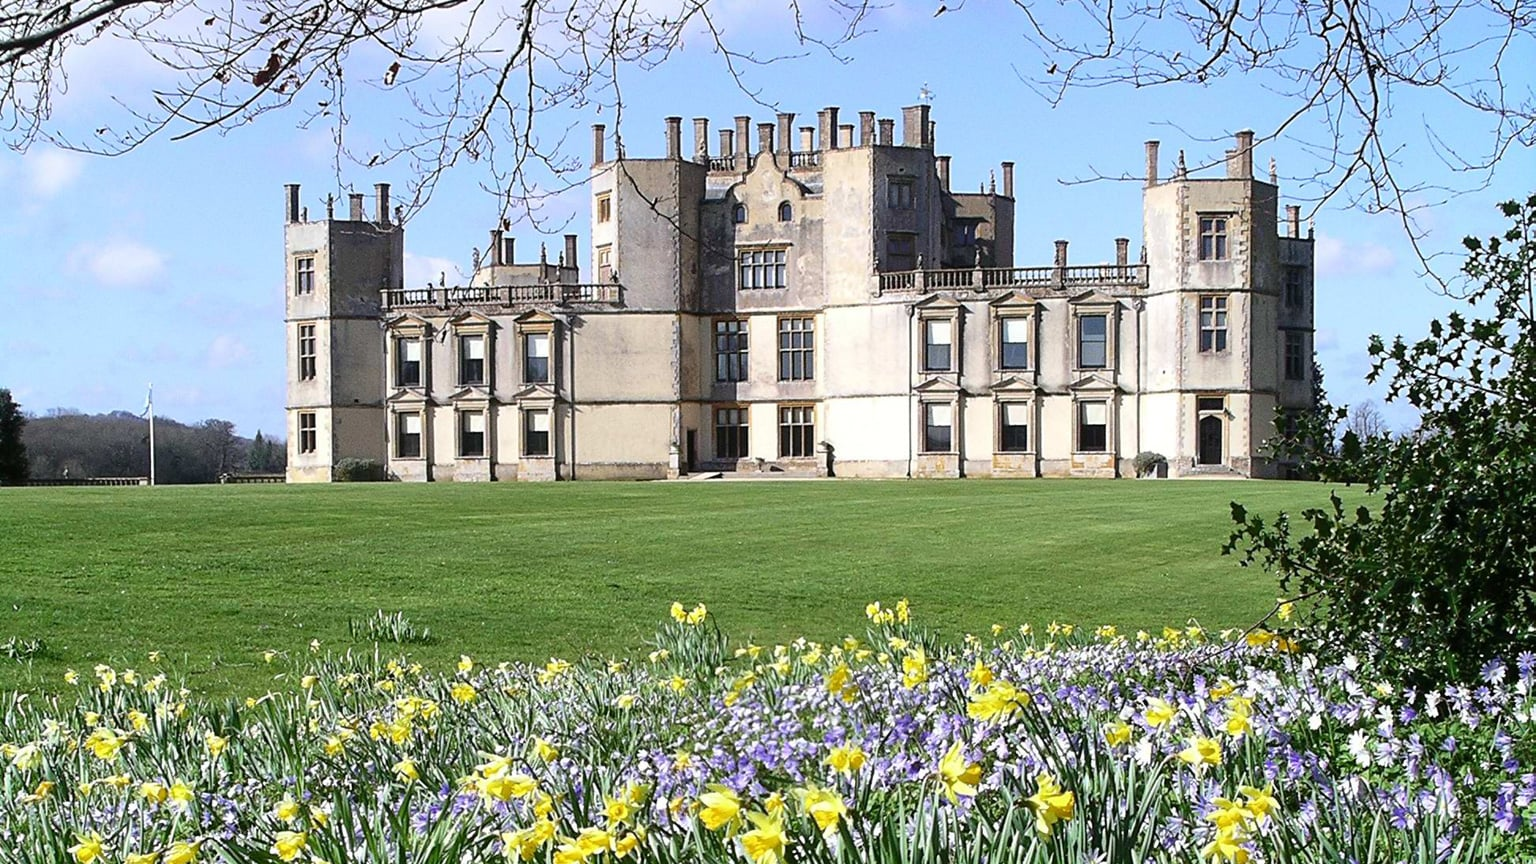 5. Sherborne Castle, Sherborne - Reduced price entry with National Art Pass